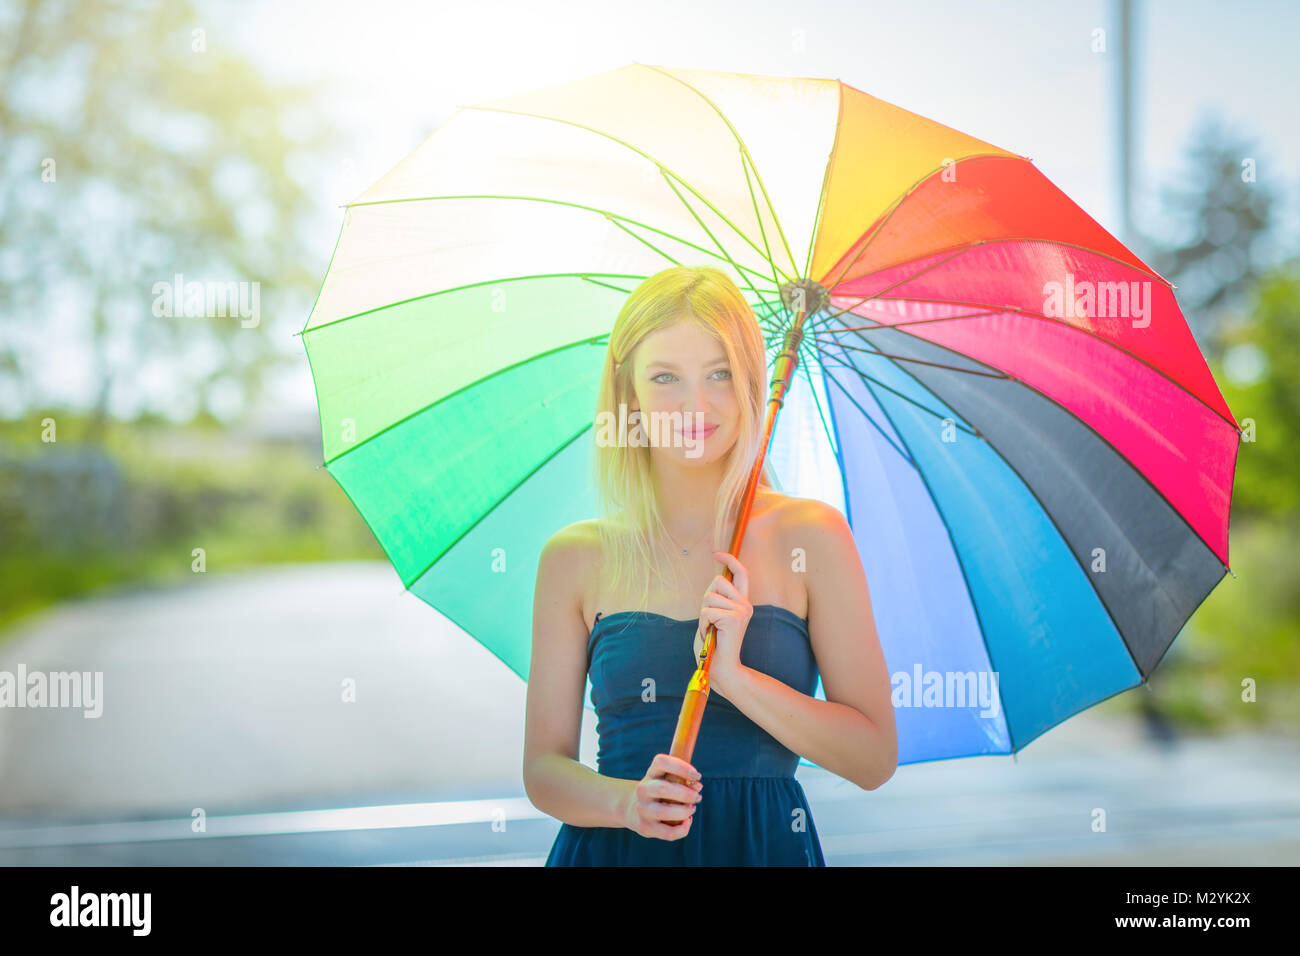 Best Colorful Umbrella for Colorful Umbrella Photography  18lpqdu